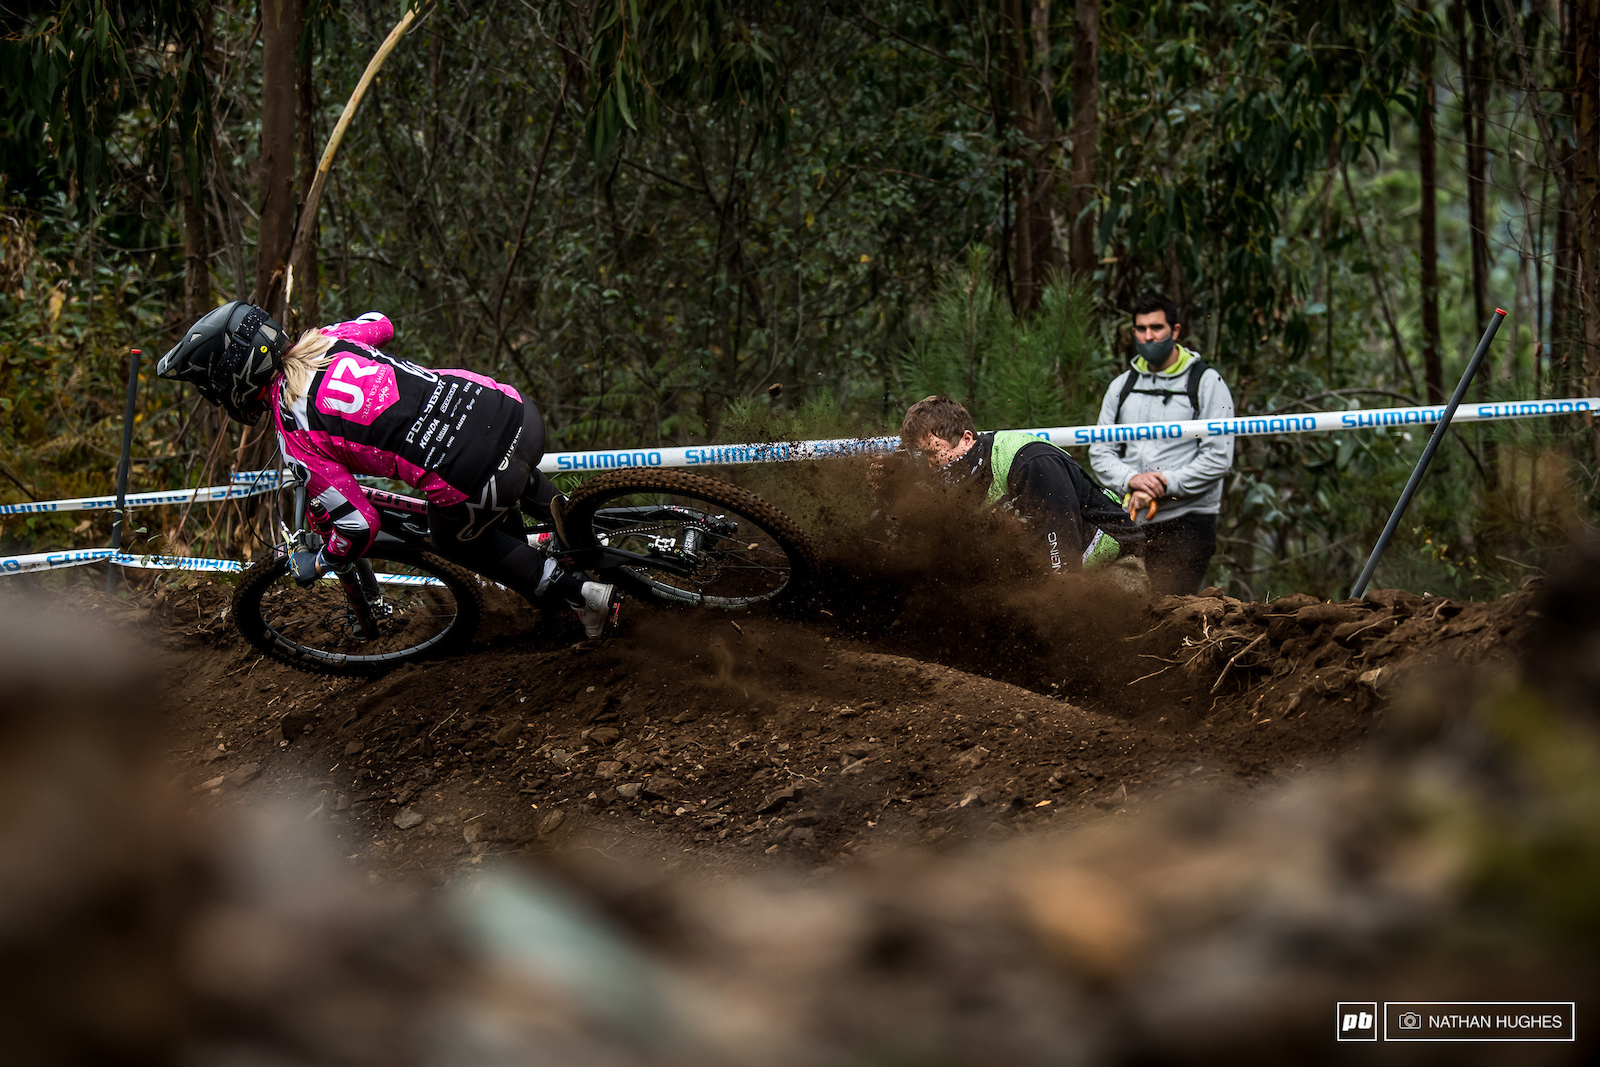 Tracey Hannah celebrating her last days at the World Cup with some good old-fashioned roost and the fastest TT lap.